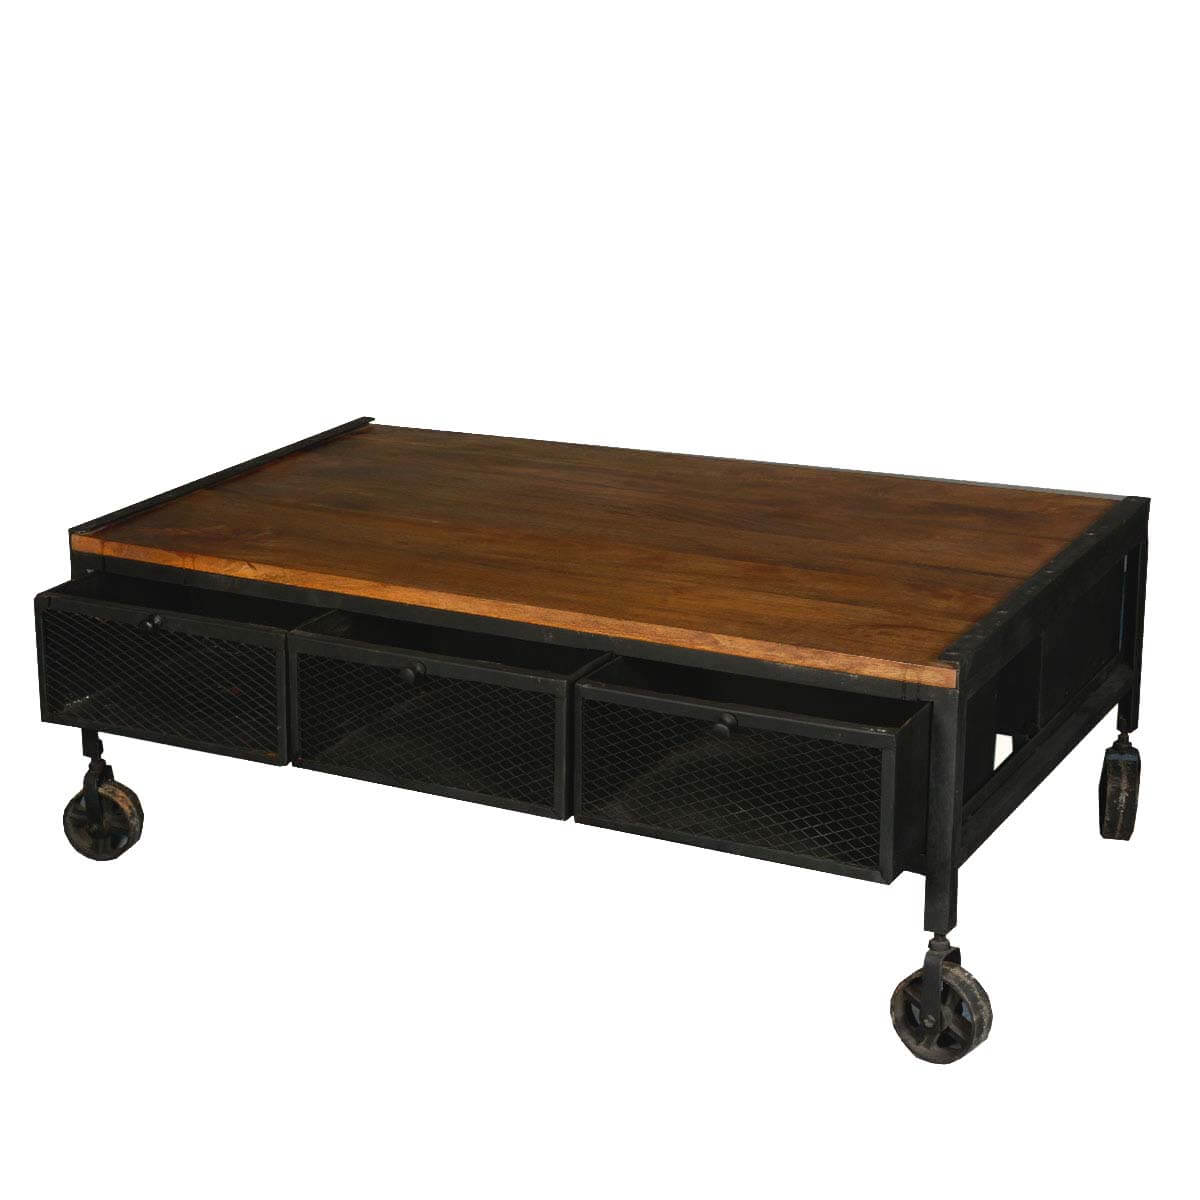 Rustic Coffee Table: Aiden Industrial Rustic Coffee Table With Drawers